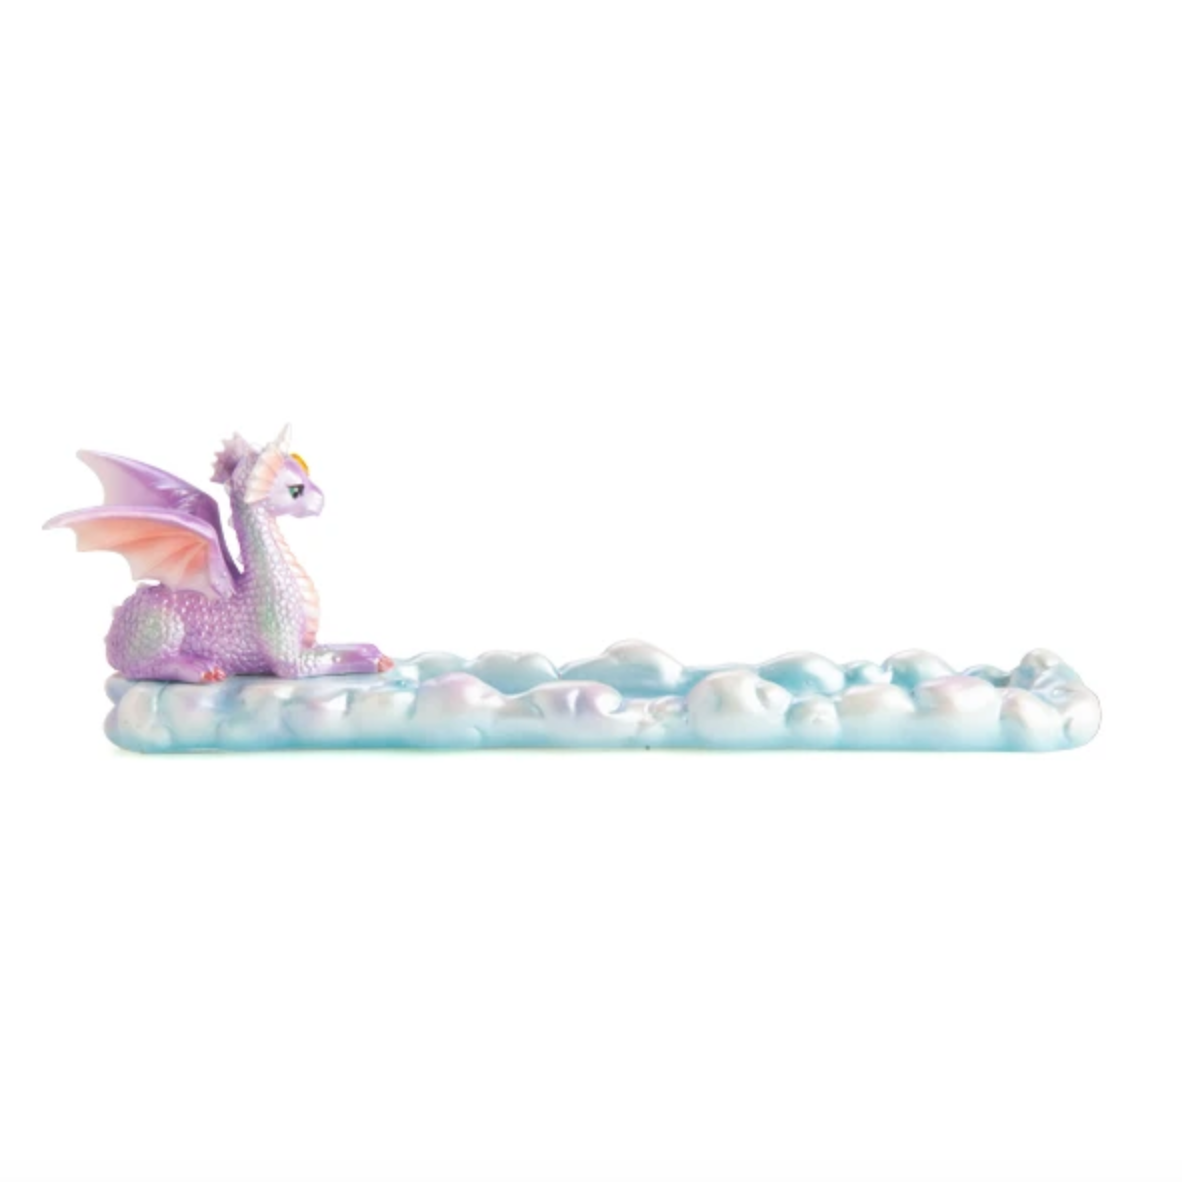 EXPRESS POST Newcastle Stock  - UniDragon Stick Incense Burner